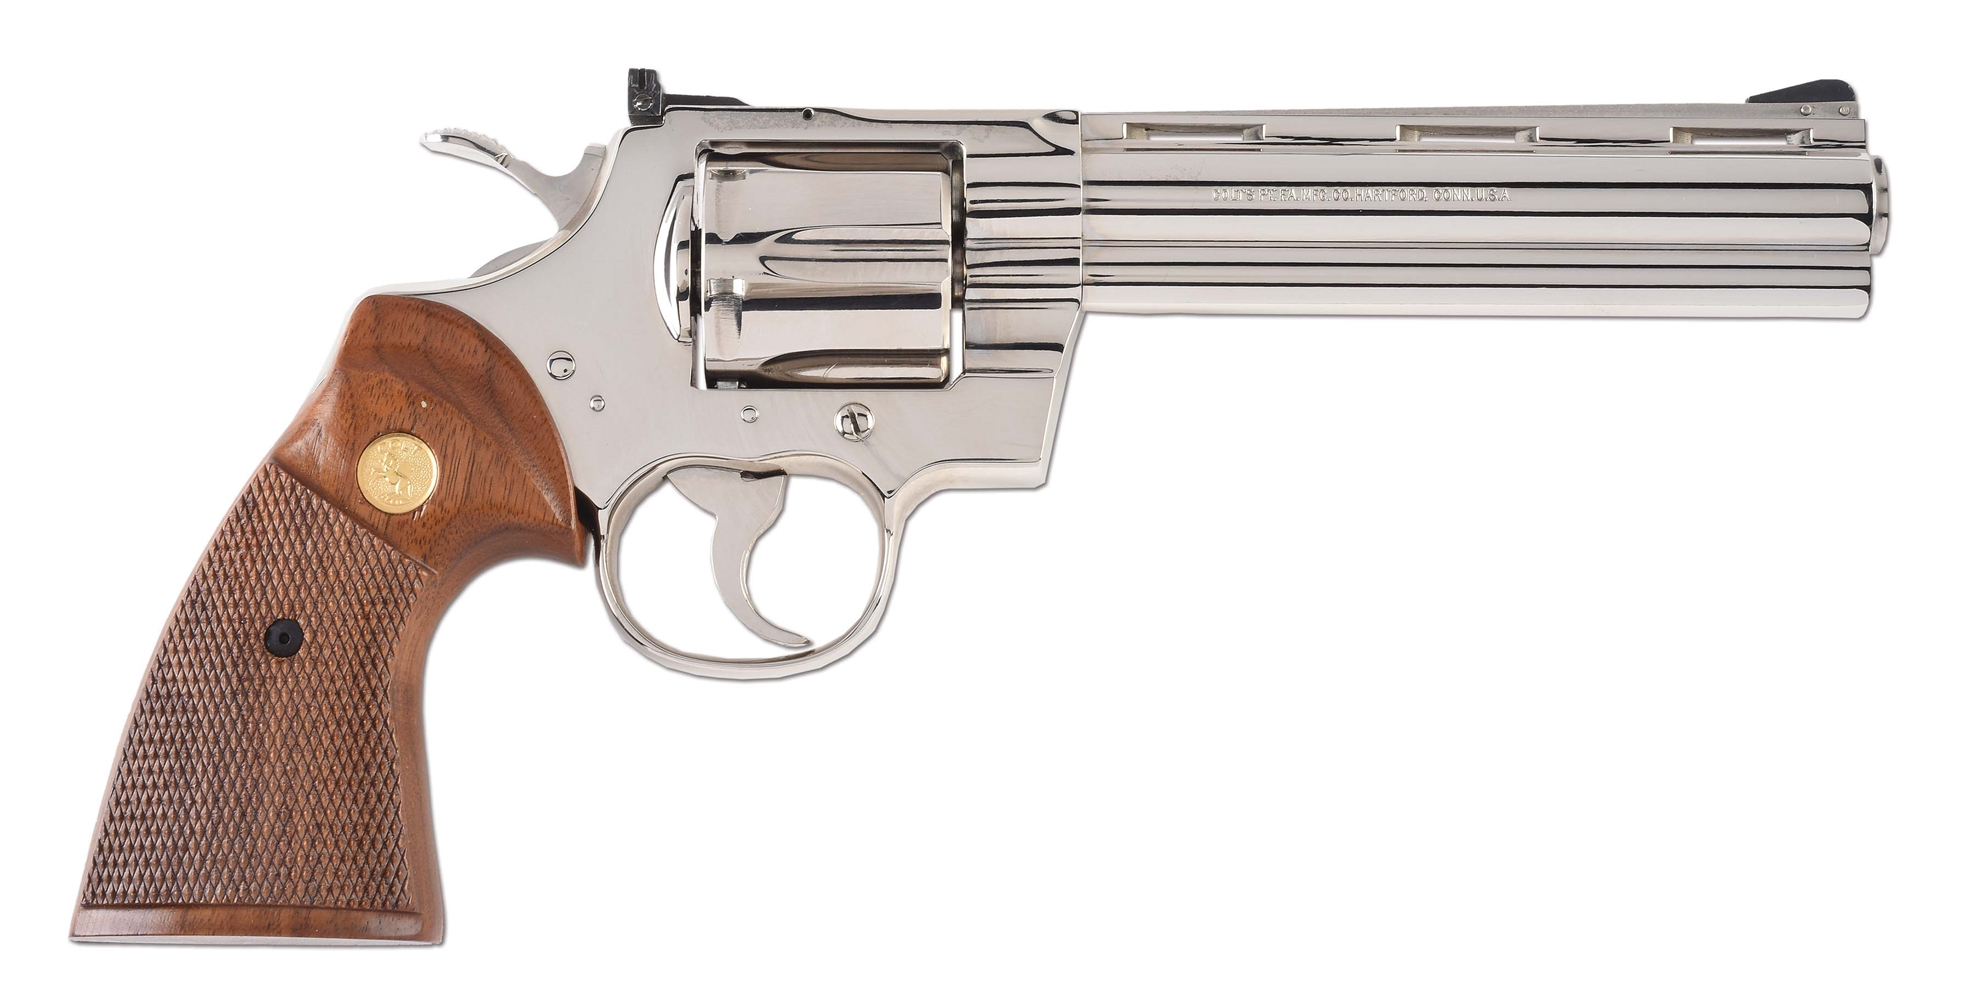 (M) Boxed Colt Nickel Python Double Action Revolver (1980).